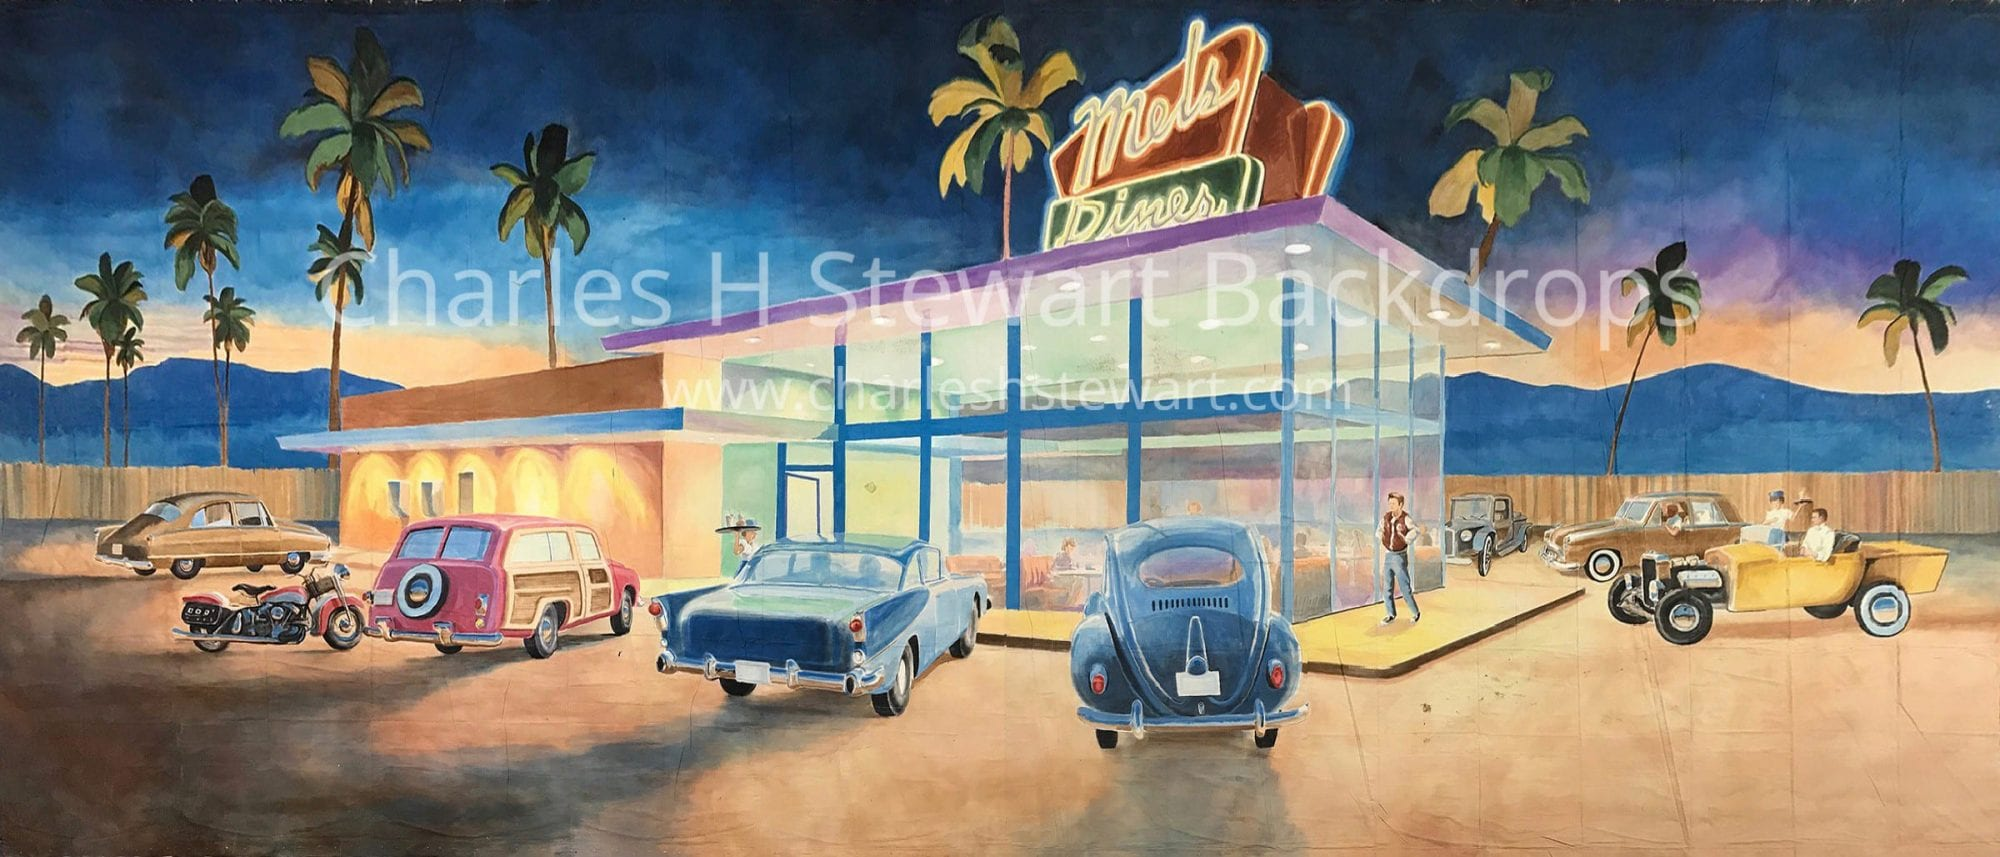 1950s Diner Exterior Backdrop - Backdrops by Charles H  Stewart